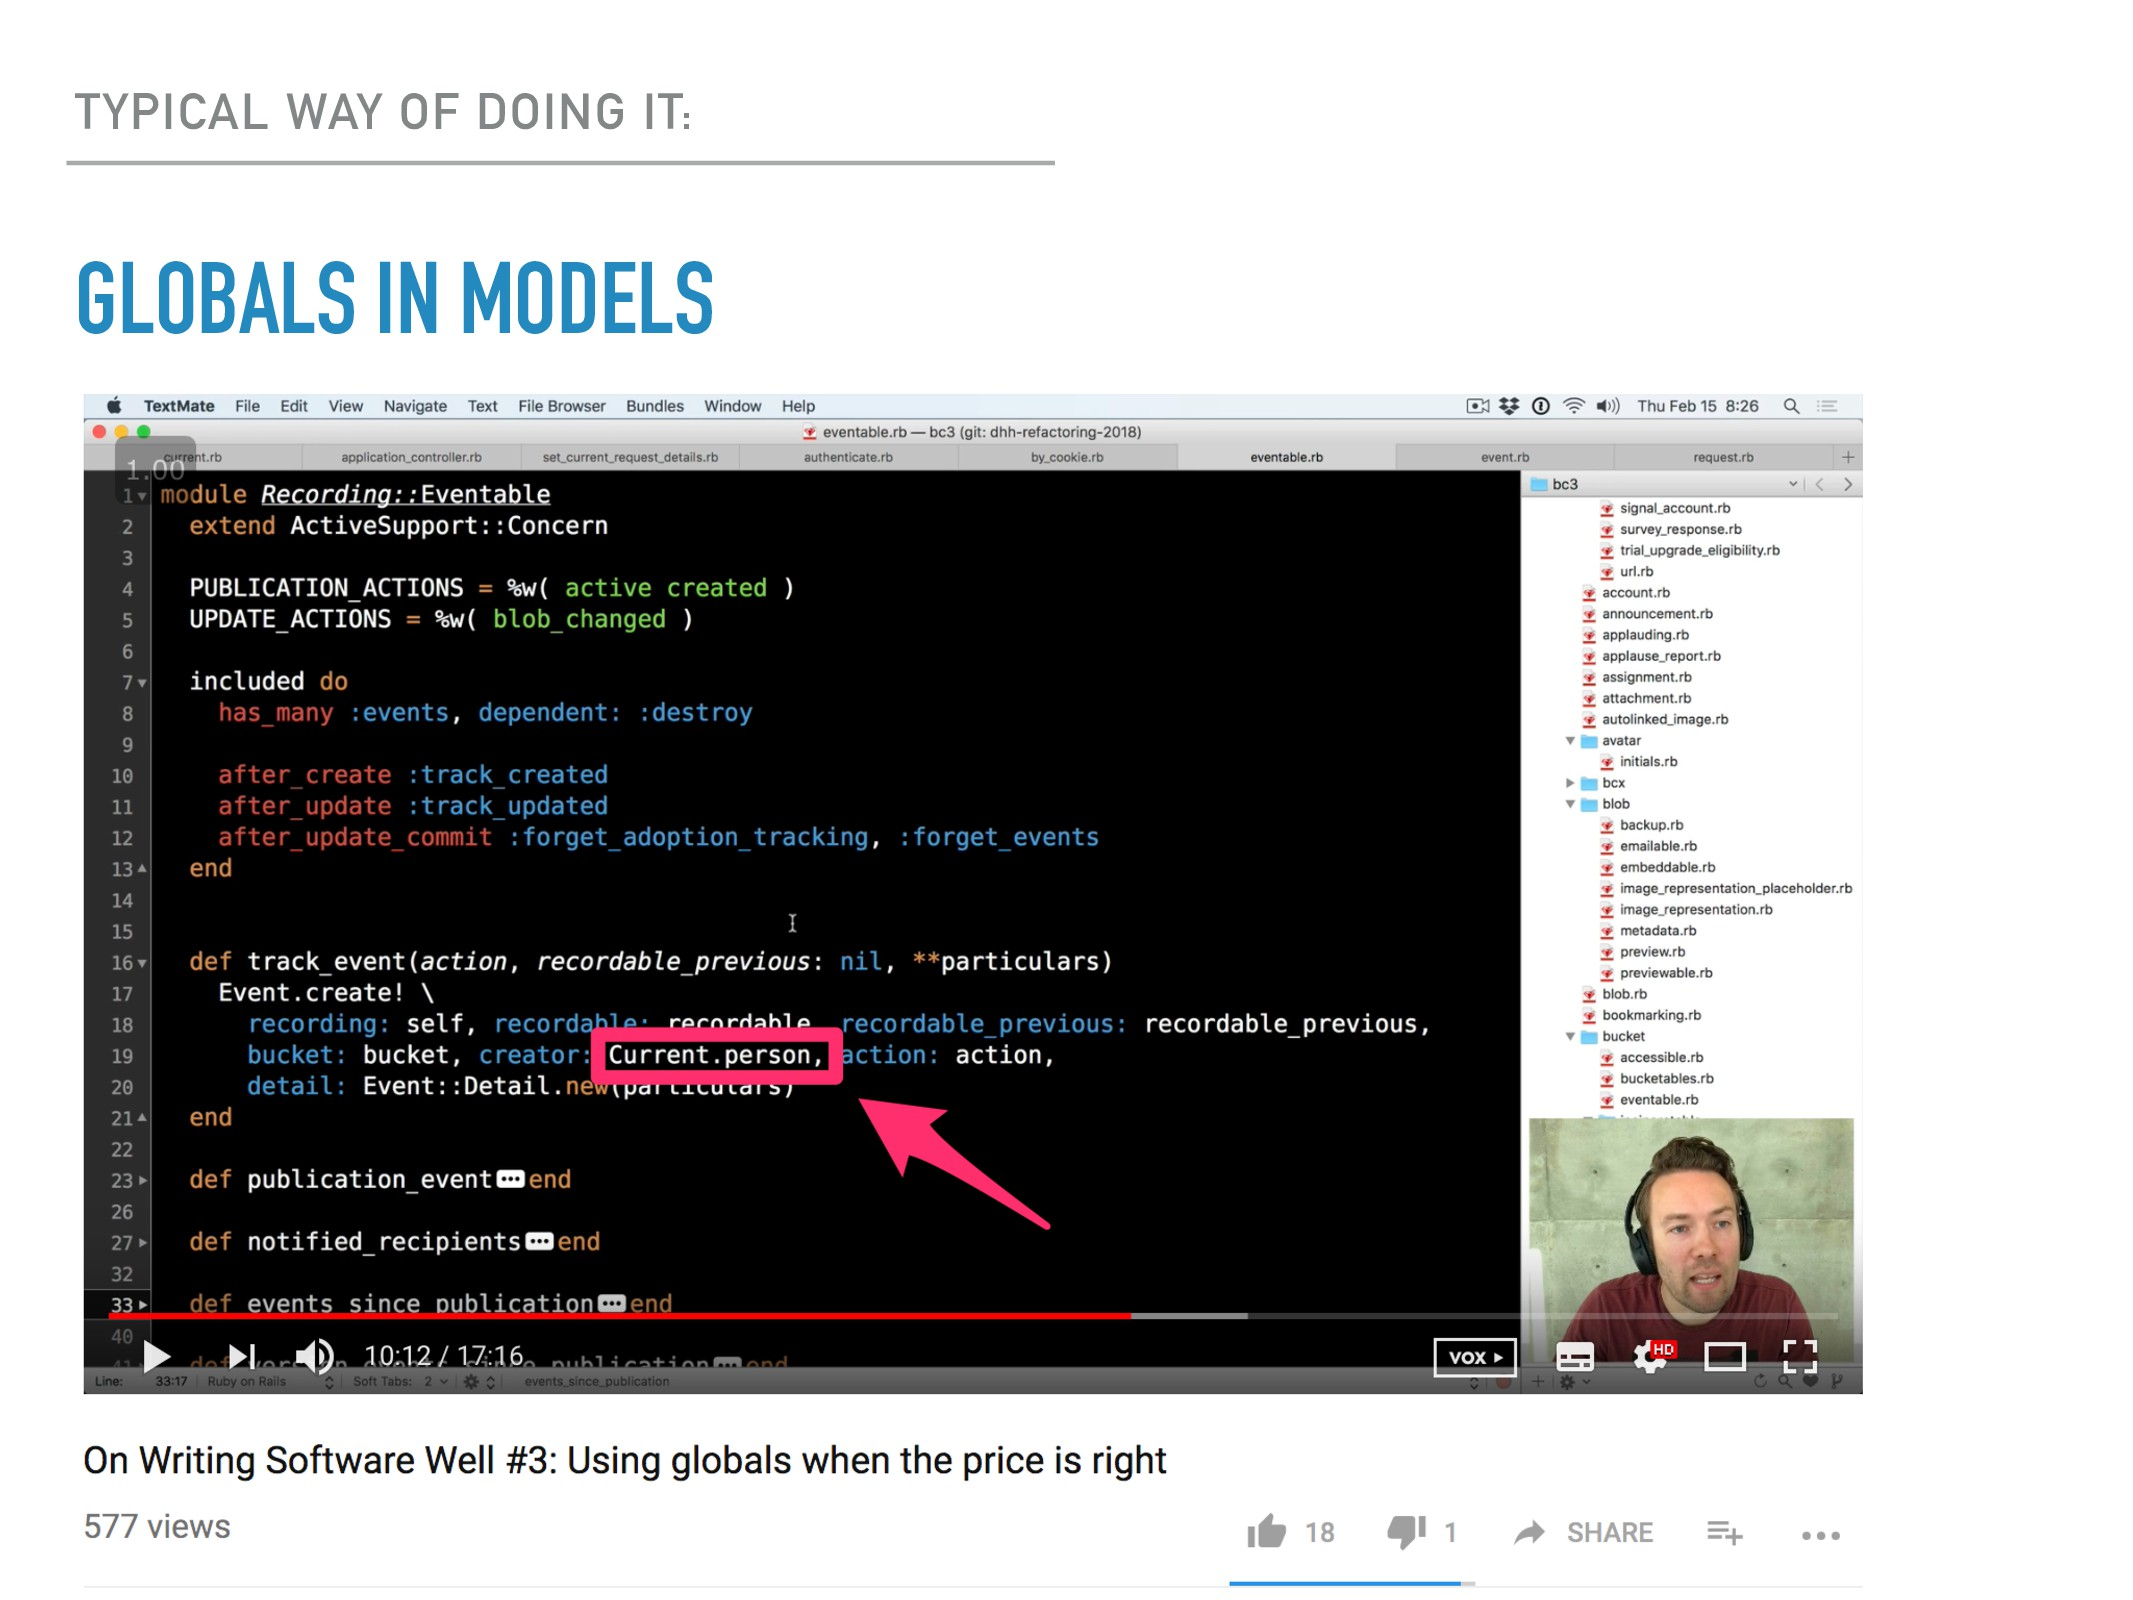 GLOBALS IN MODELS TYPICAL WAY OF DOING IT: